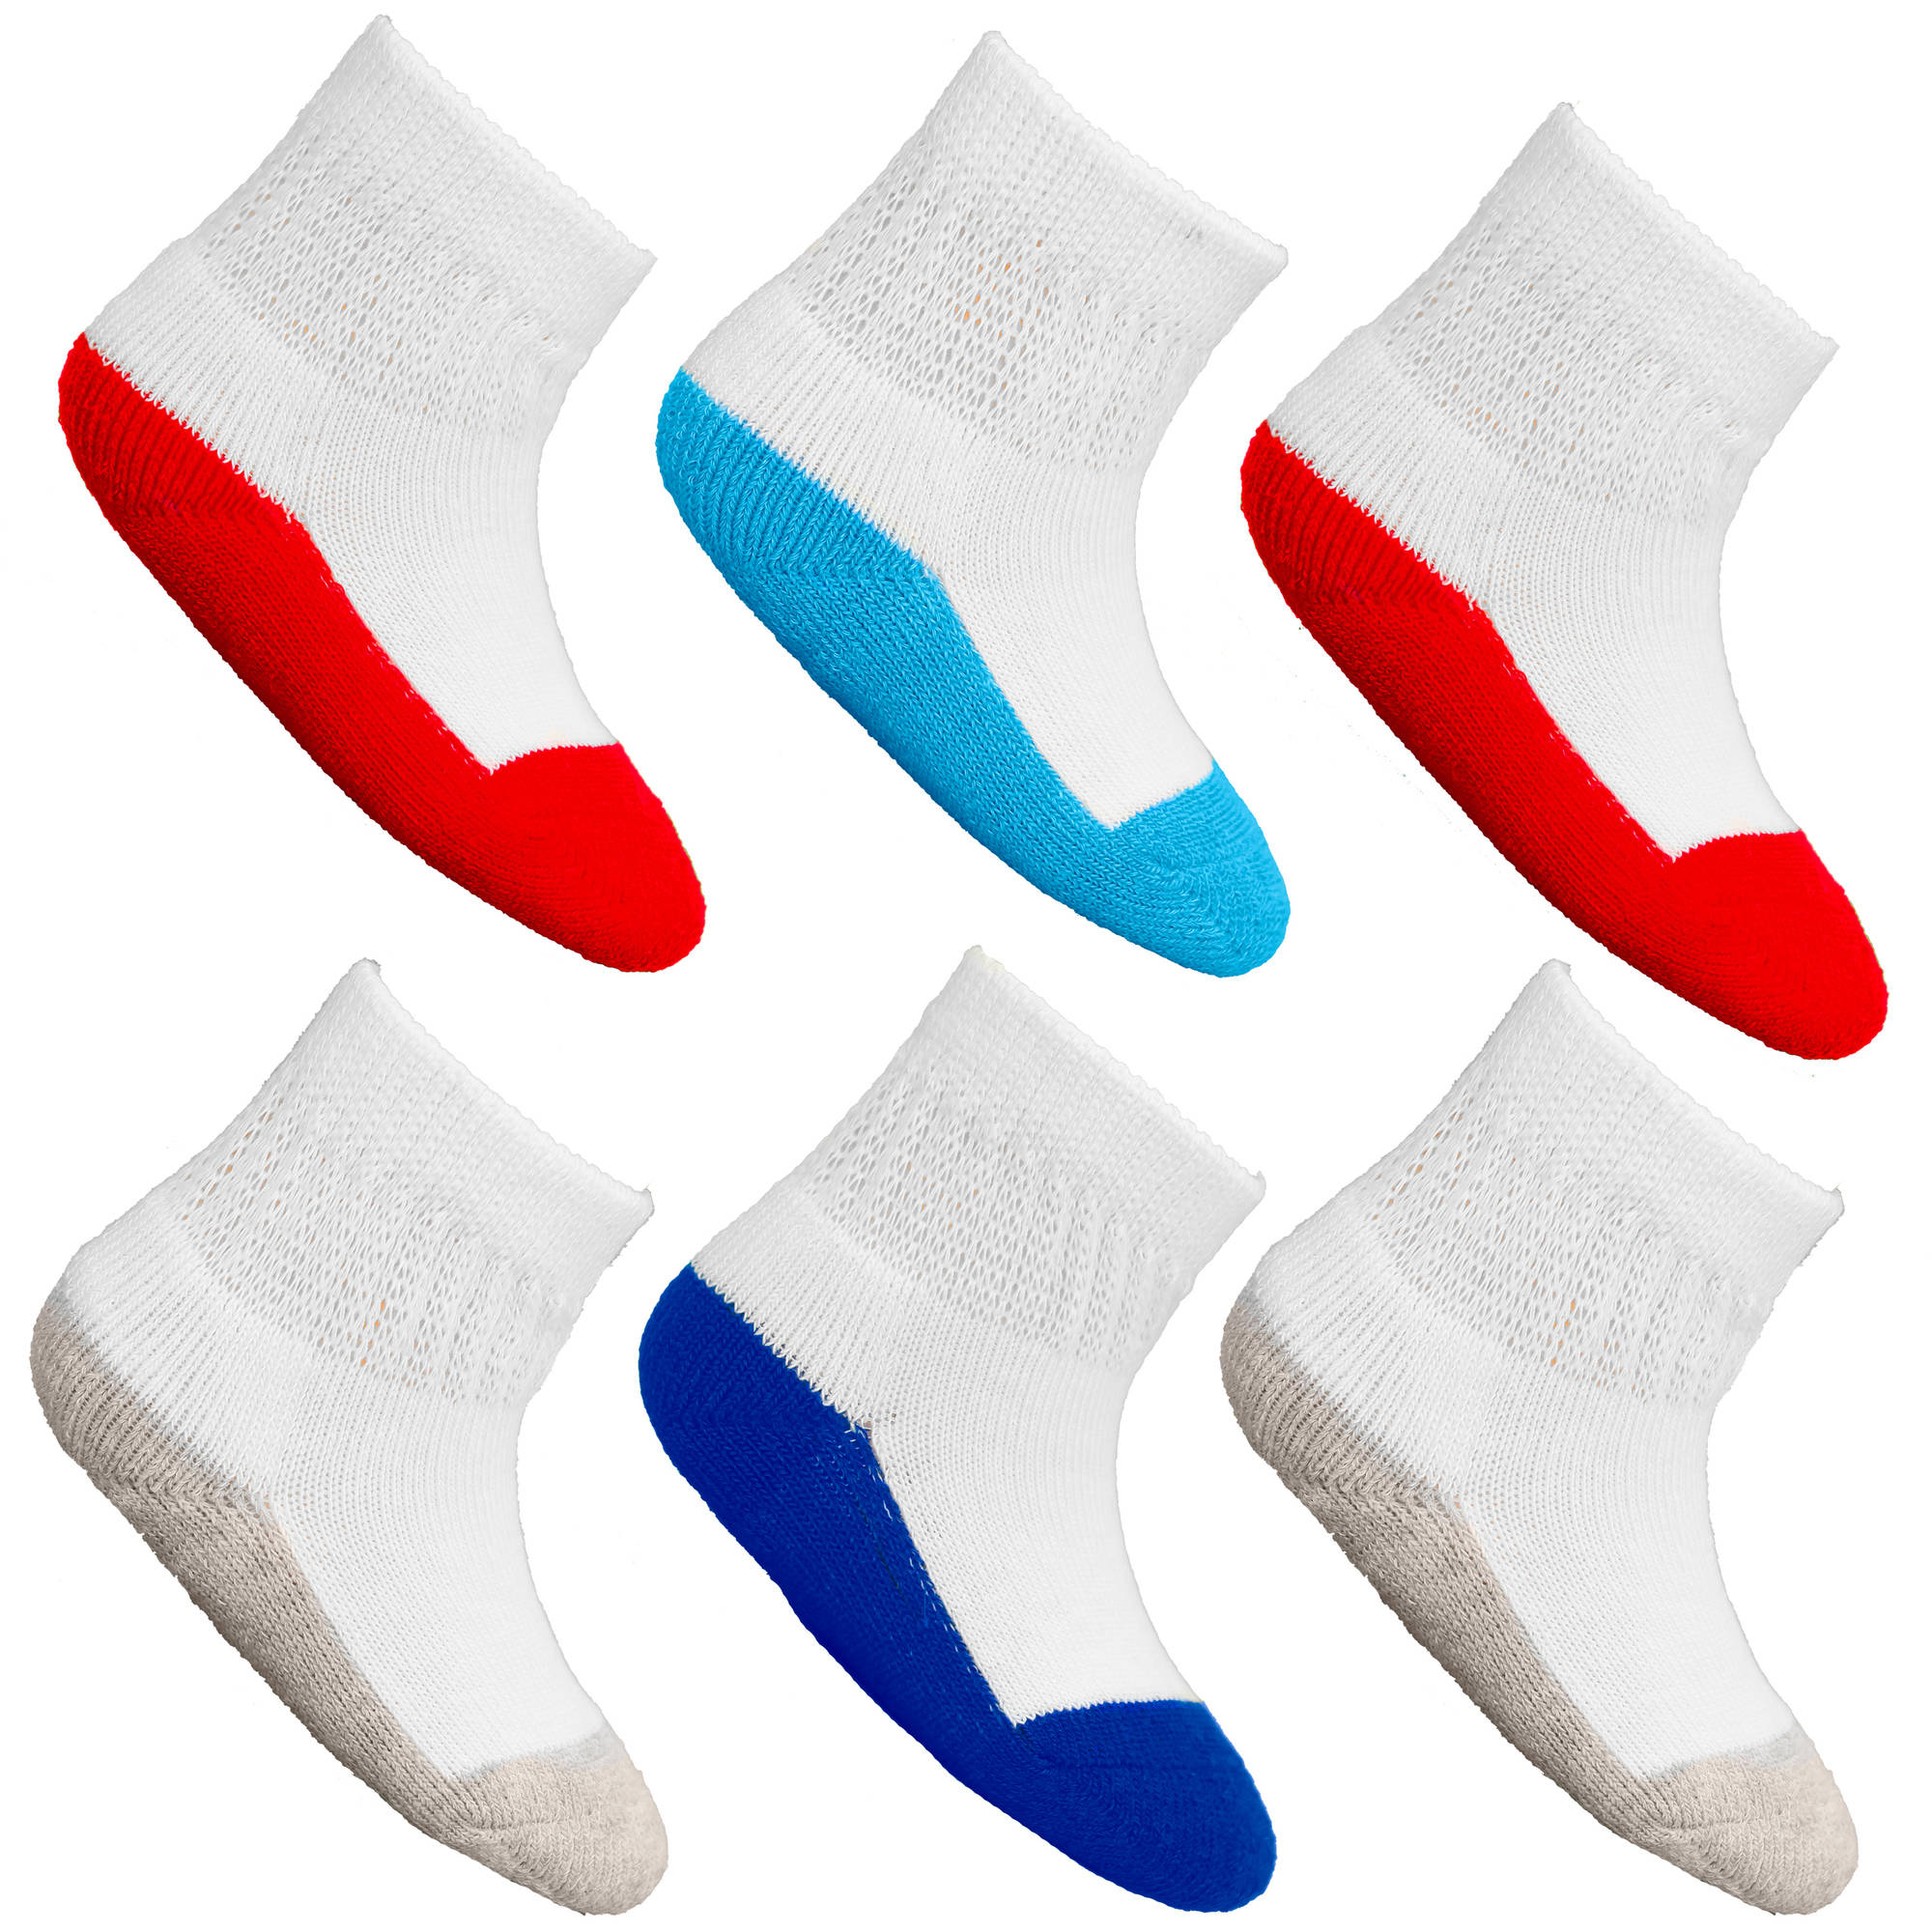 Fruit of the Loom Value Pack Baby Boys Ankle Socks - 6 Pairs